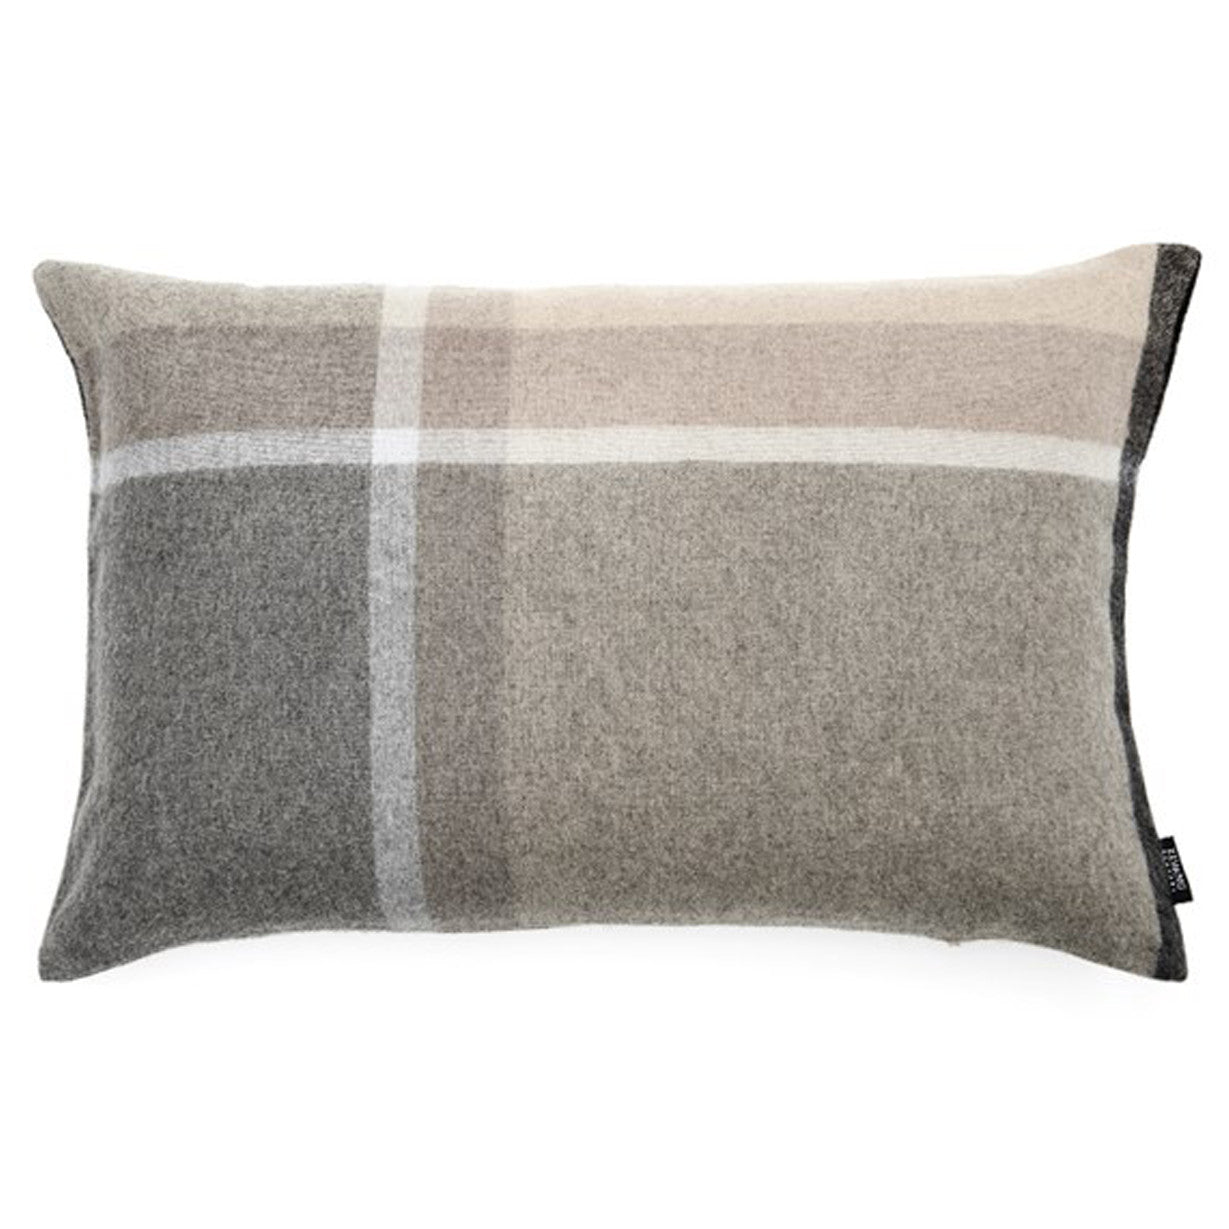 modern pillows  woodwaves - modern white and natural grey plaid luxury soft alpaca and sheep wool pillowcover